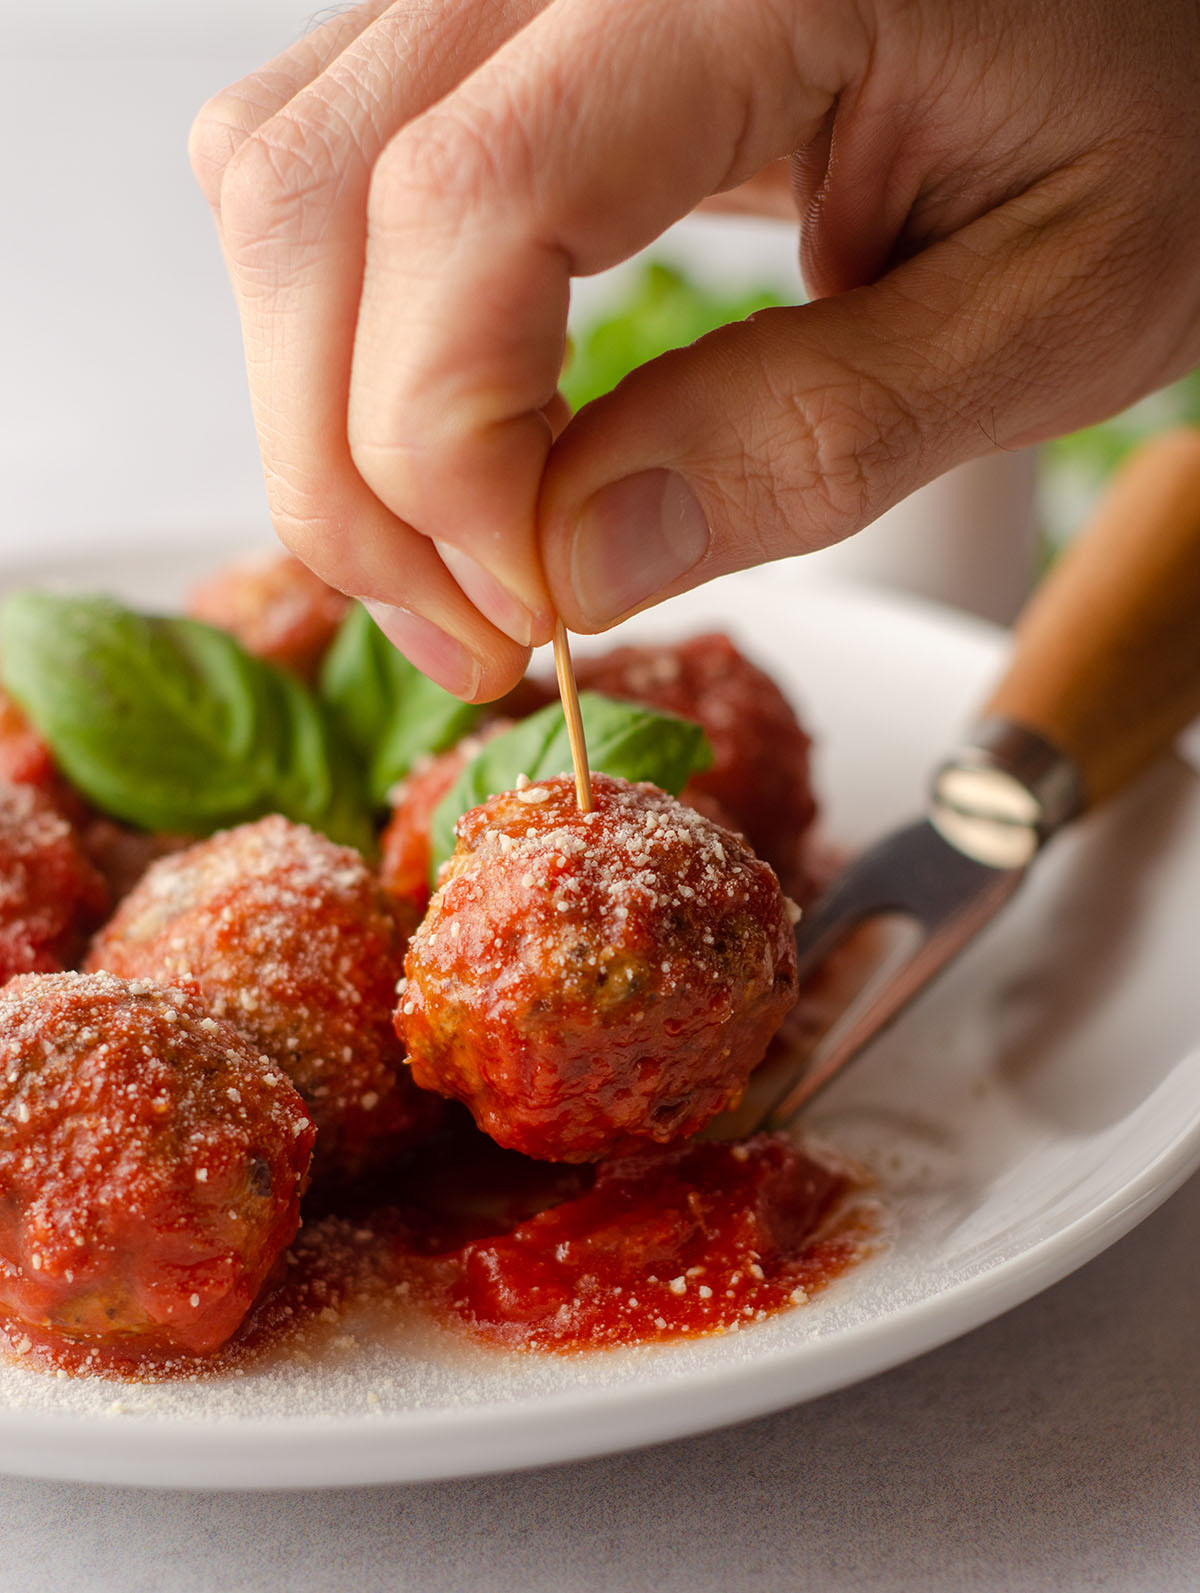 hand sticking a toothpick into a gluten free meatball